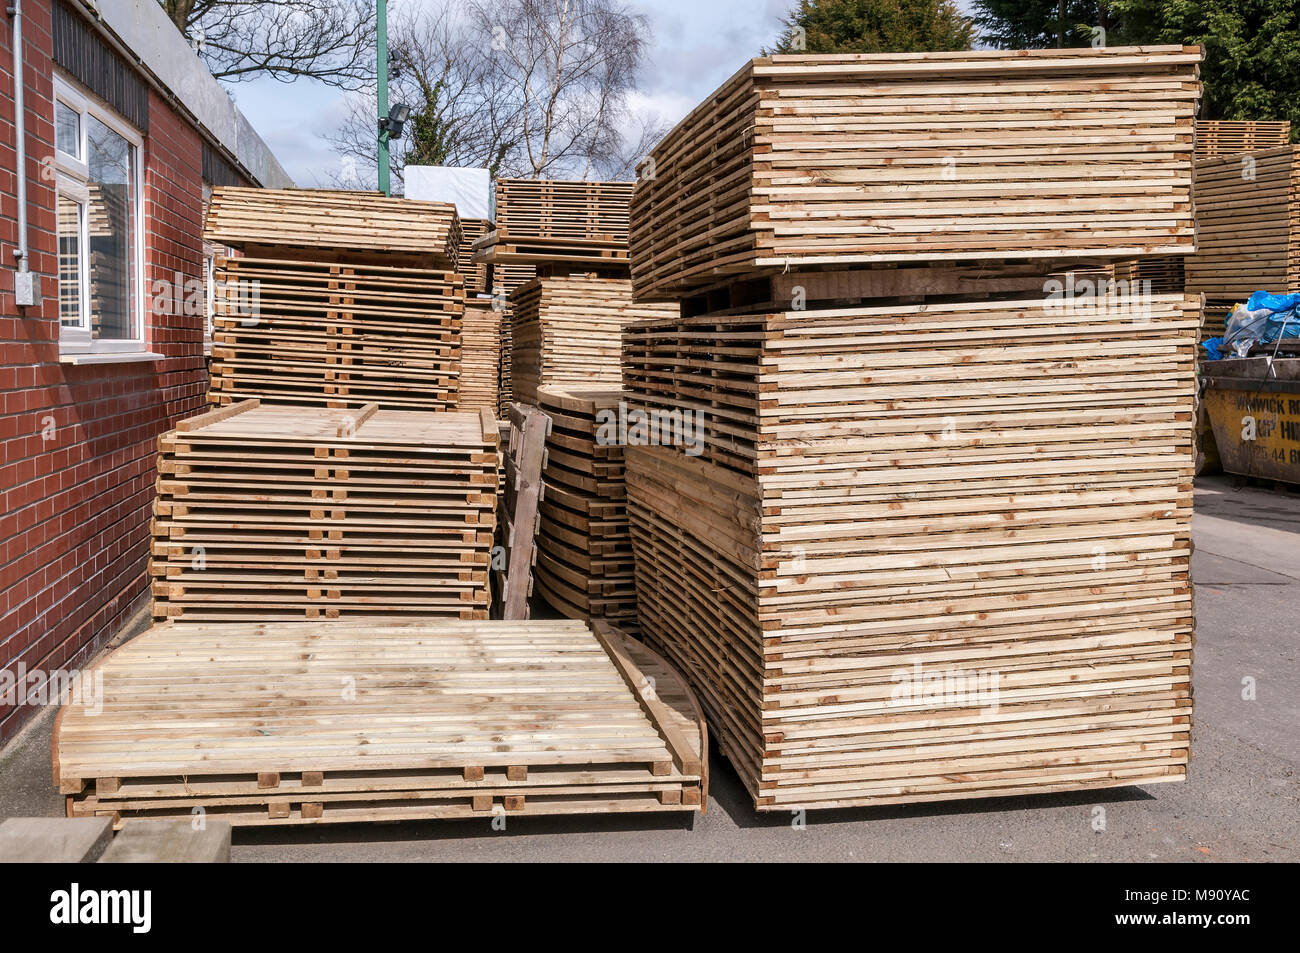 Piles of wooden fencing. - Stock Image